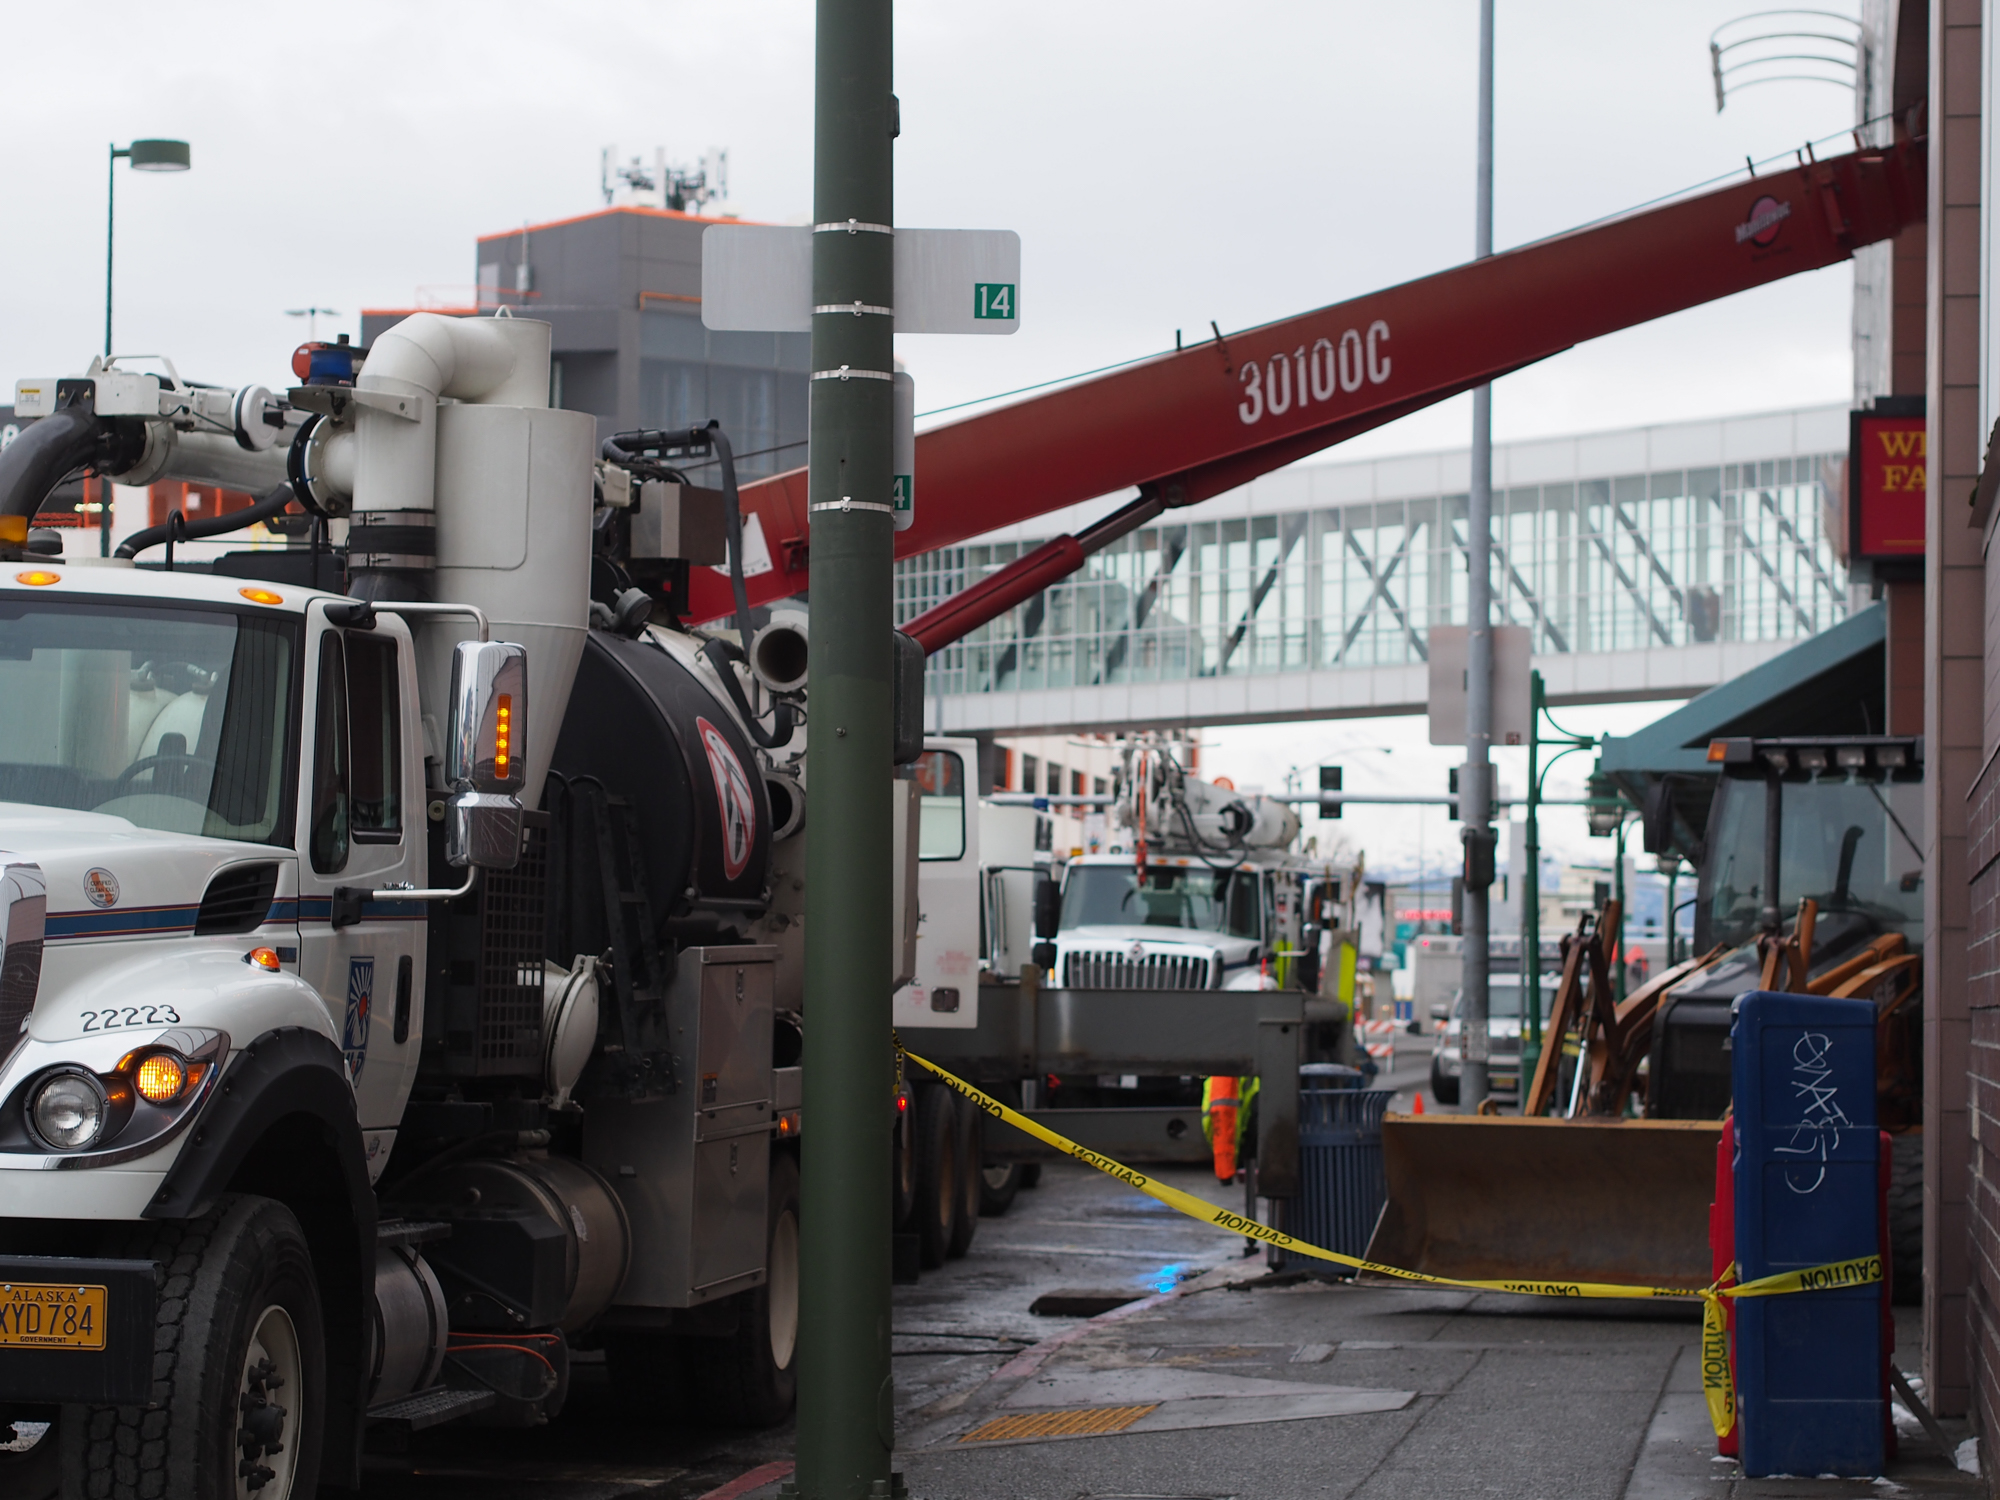 Municipal Light and Power crews work on digging through cement to reach a malfunctioning transformer knocked out during the earthquake, interrupting power to the 5th Avenue Mall. (Photo by Zachariah Hughes/KSKA)